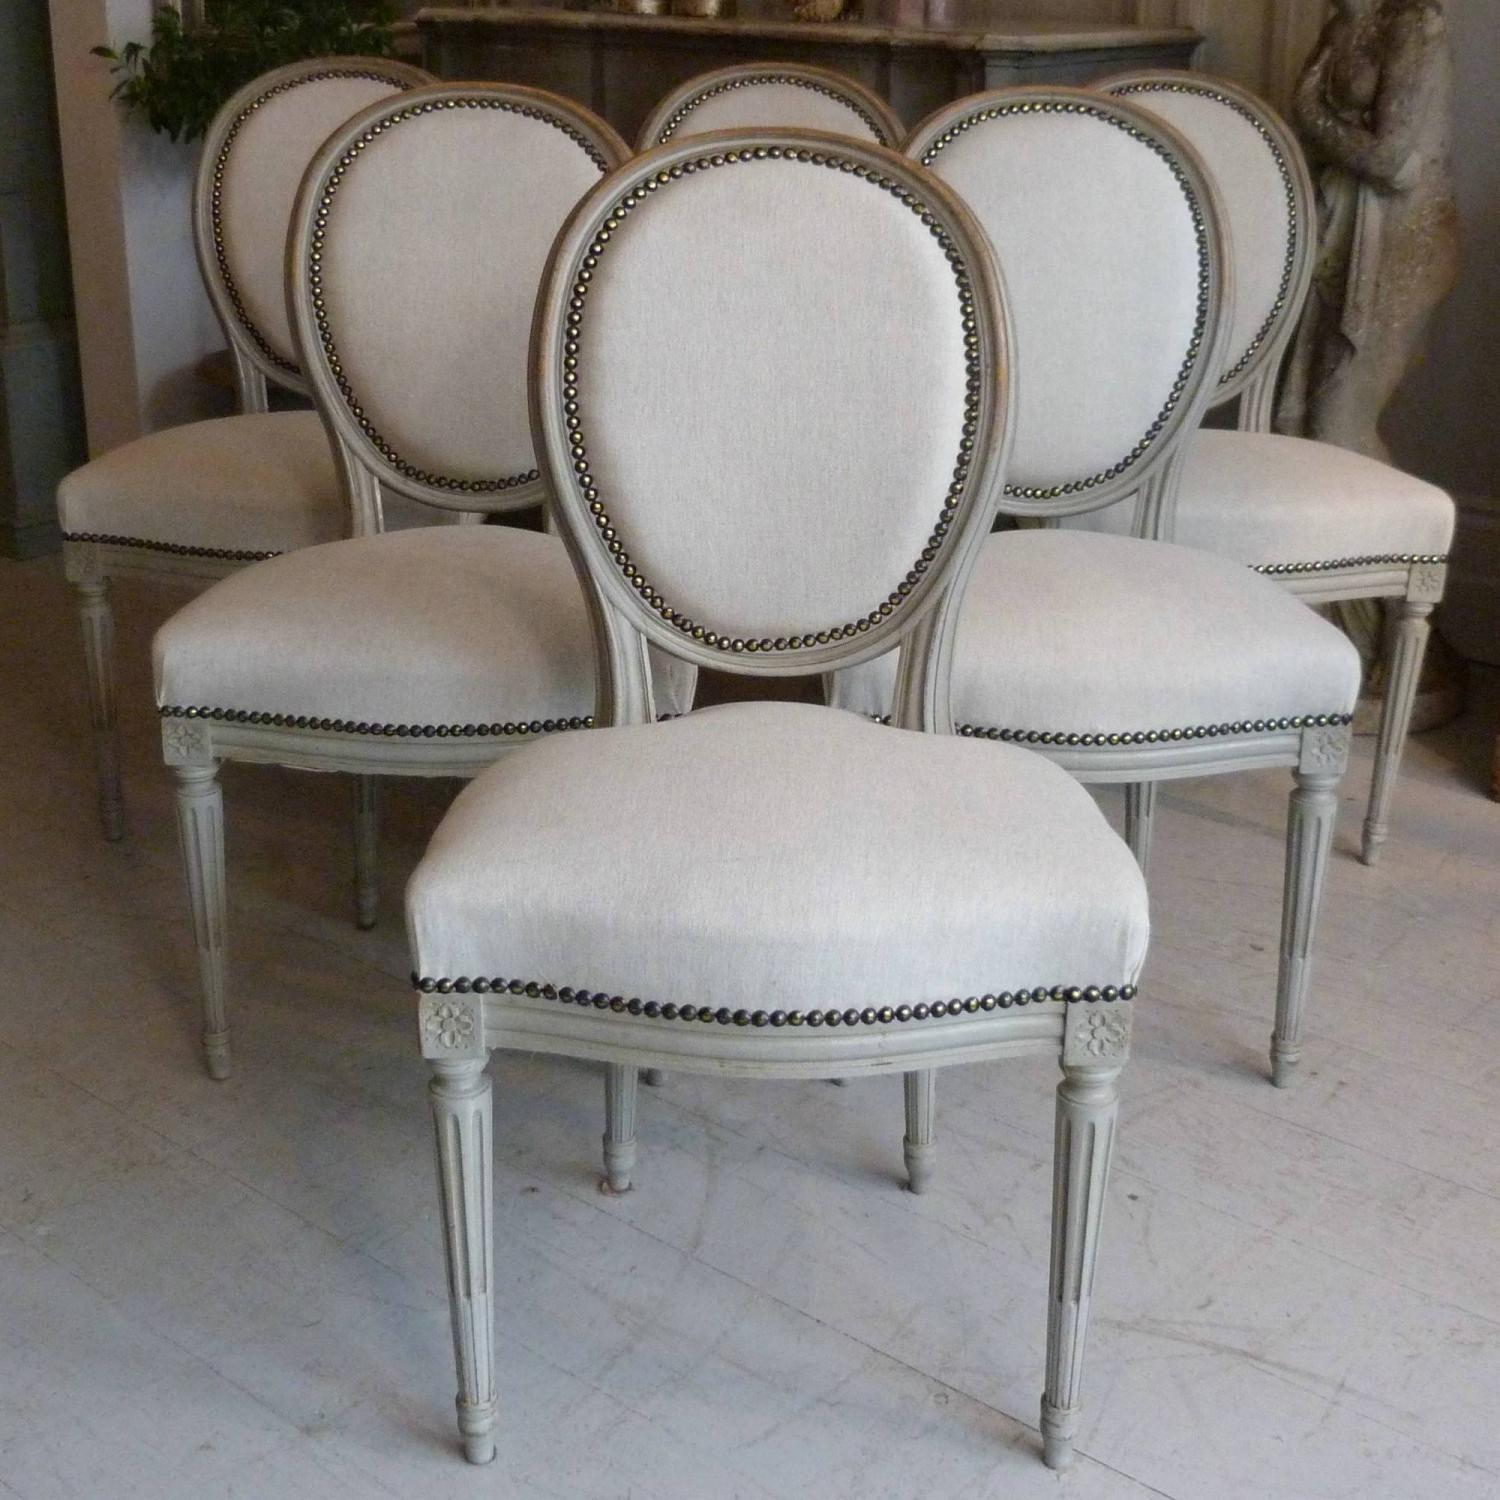 French Dining Chairs Set Of Six 19th Century French Louis Xvi Dining Chairs In